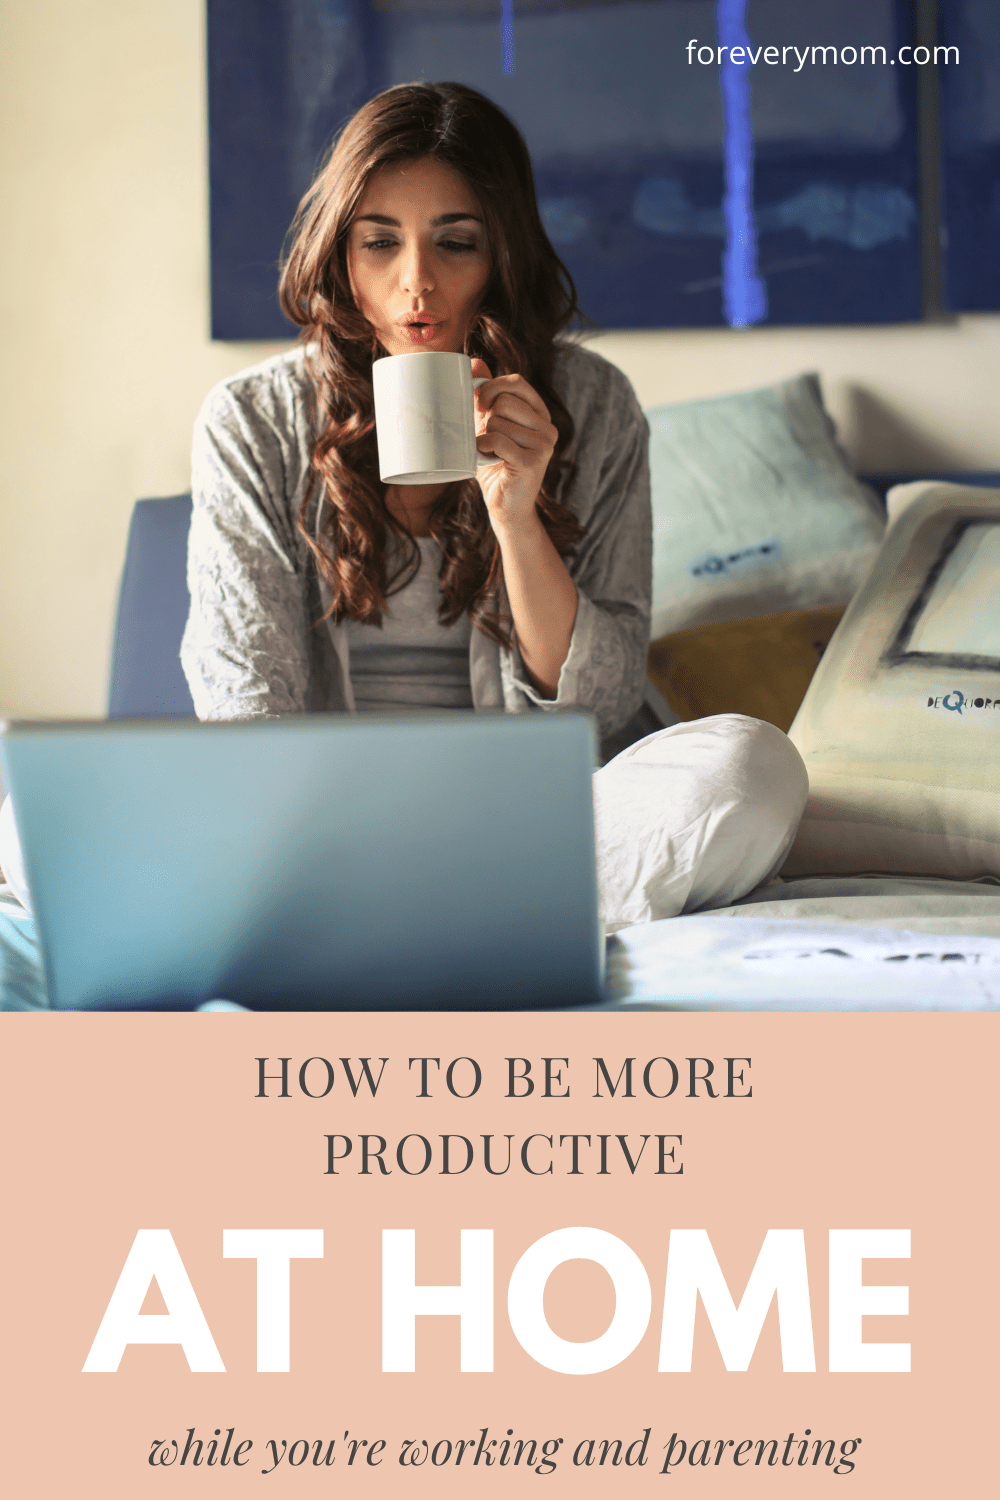 how to be more productive at home